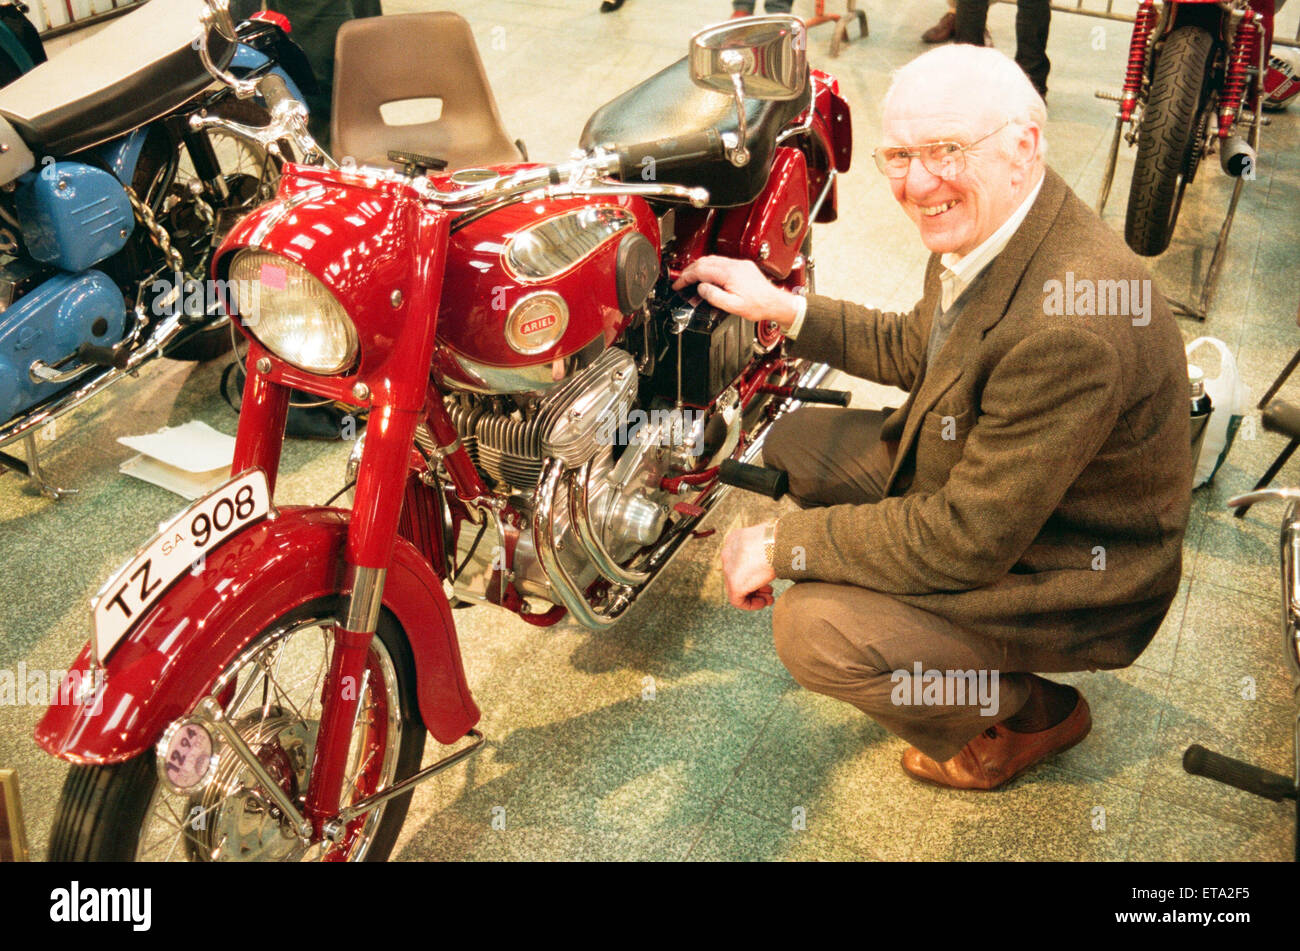 Big Bike Show - Eddie Saint with his 1958 Ariel Square 4 which was exported to Australia for use by the police. - Stock Image